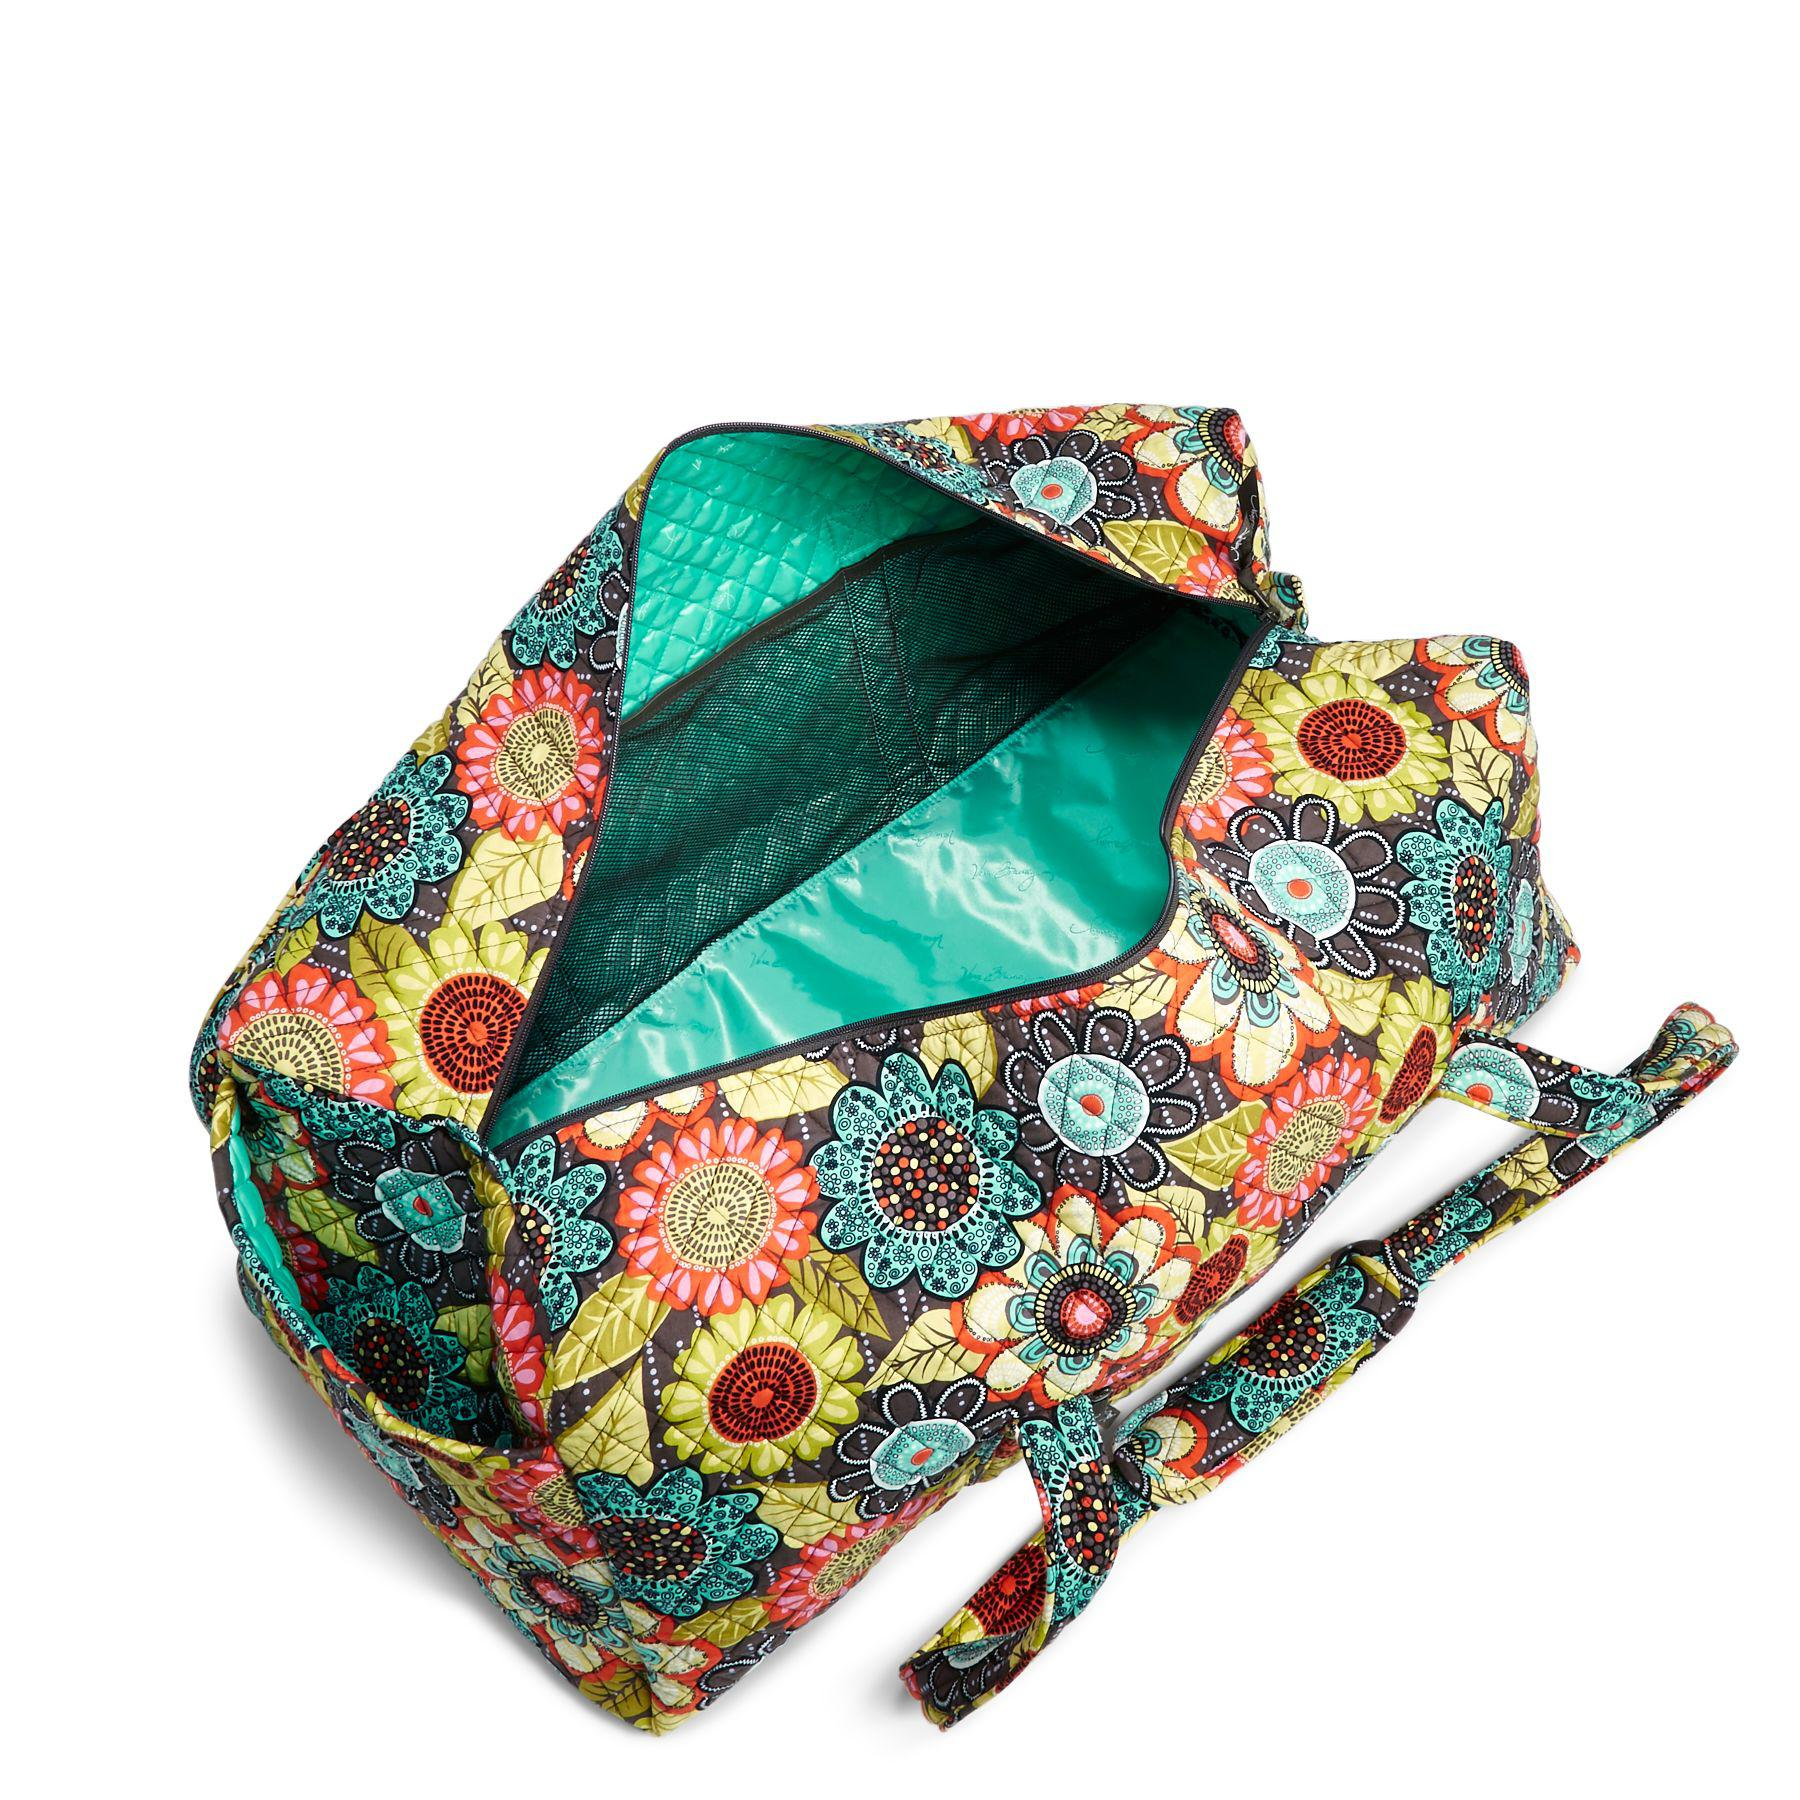 Gallery Previously Sold At Vera Bradley Women S Duffel Bags